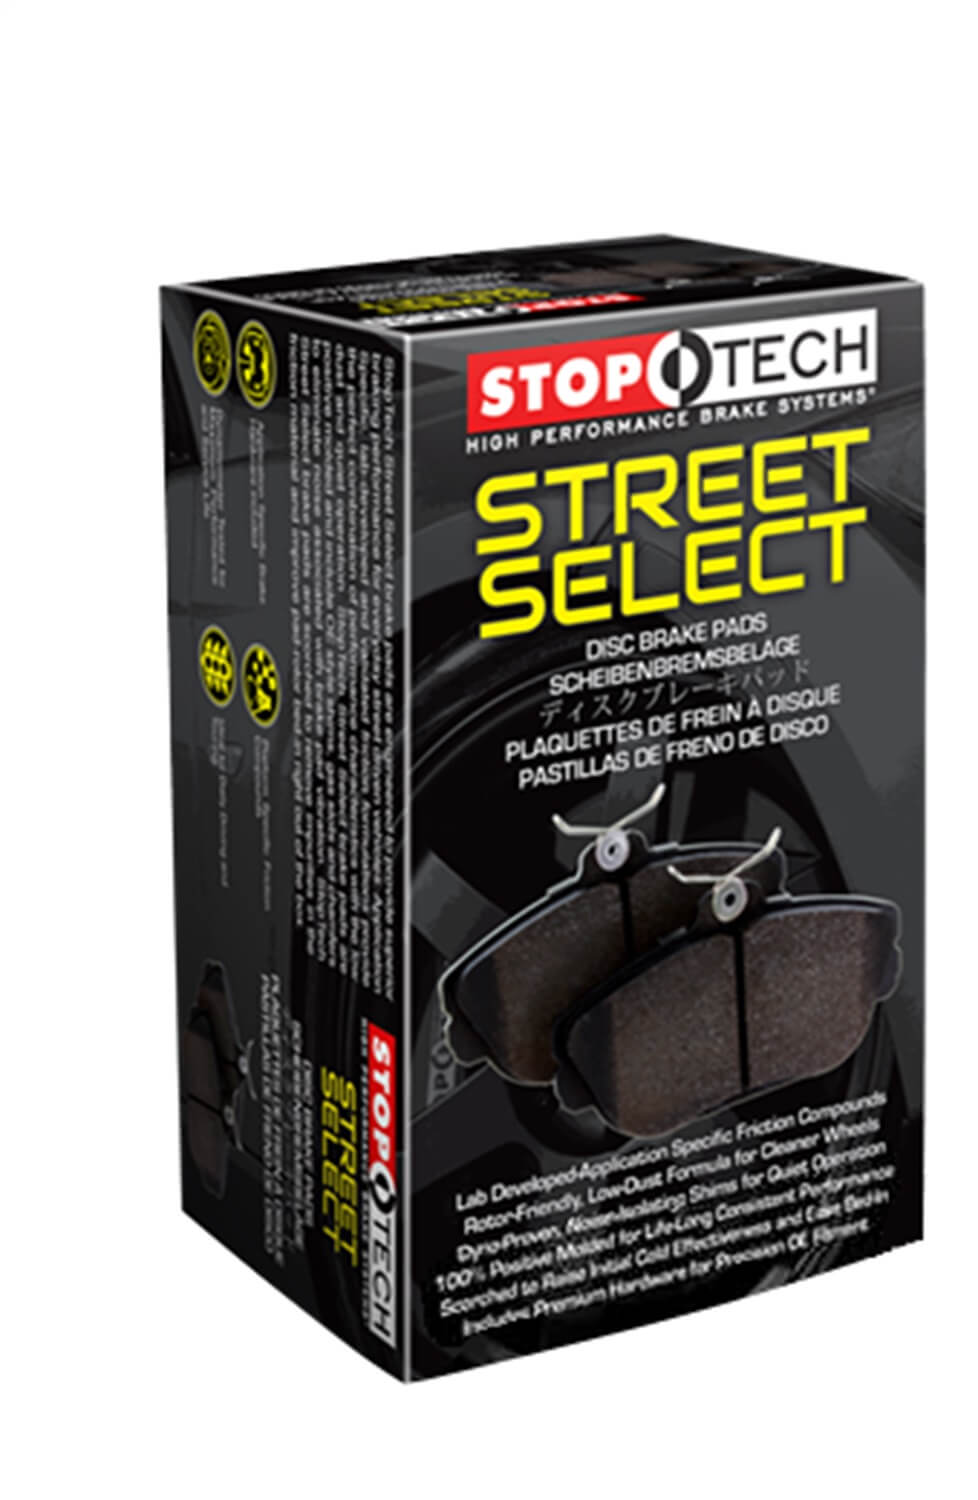 StopTech 305.13740 Street Select Brake Pads with Hardware